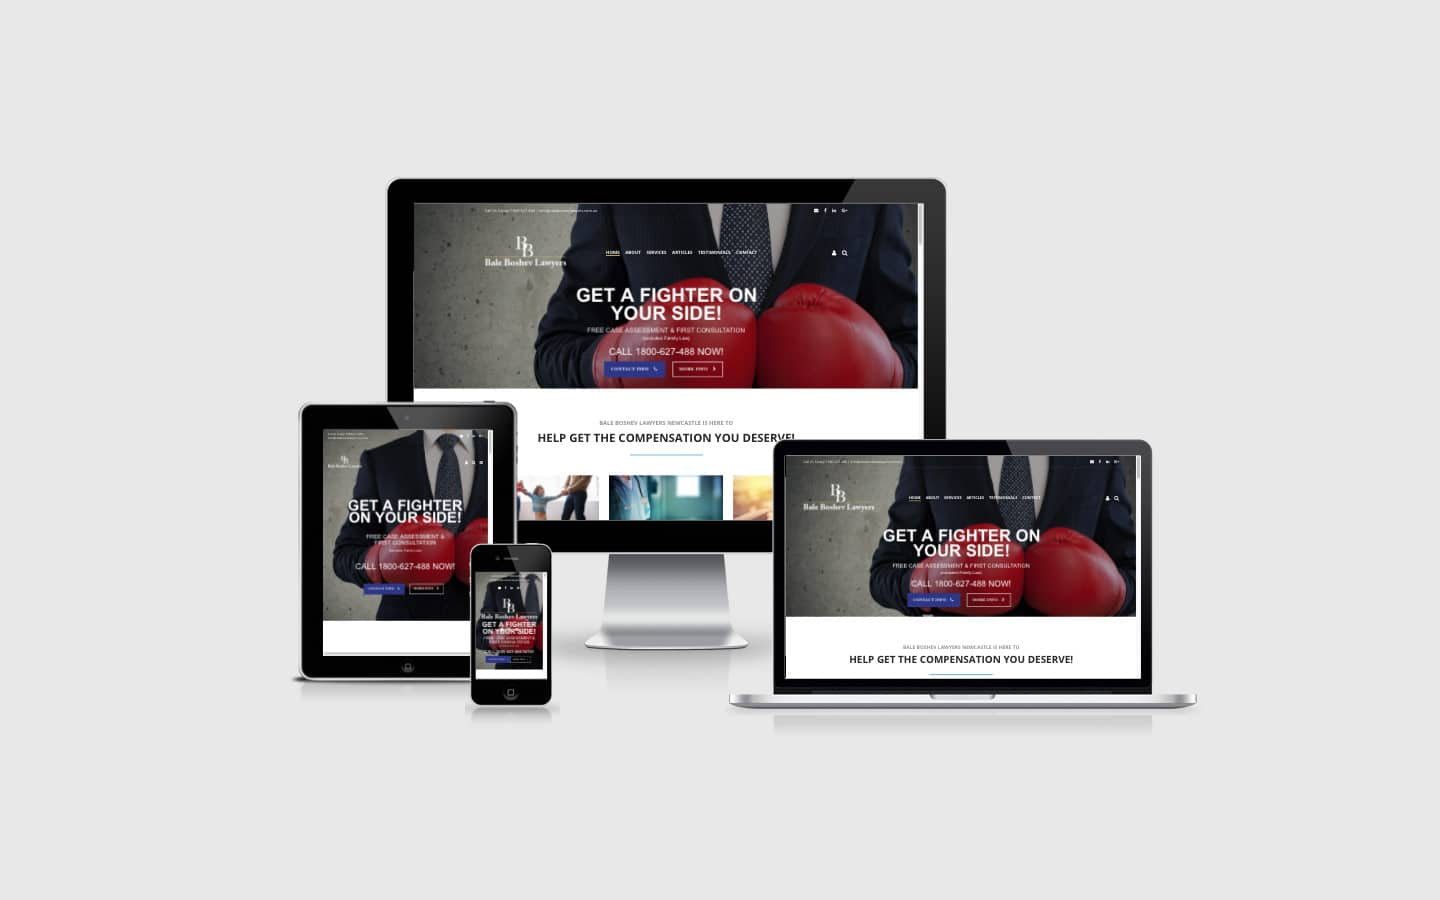 Website build for Bale Boshev Lawyers, including SEO optimisation and a blog | Newcastle Creative Co